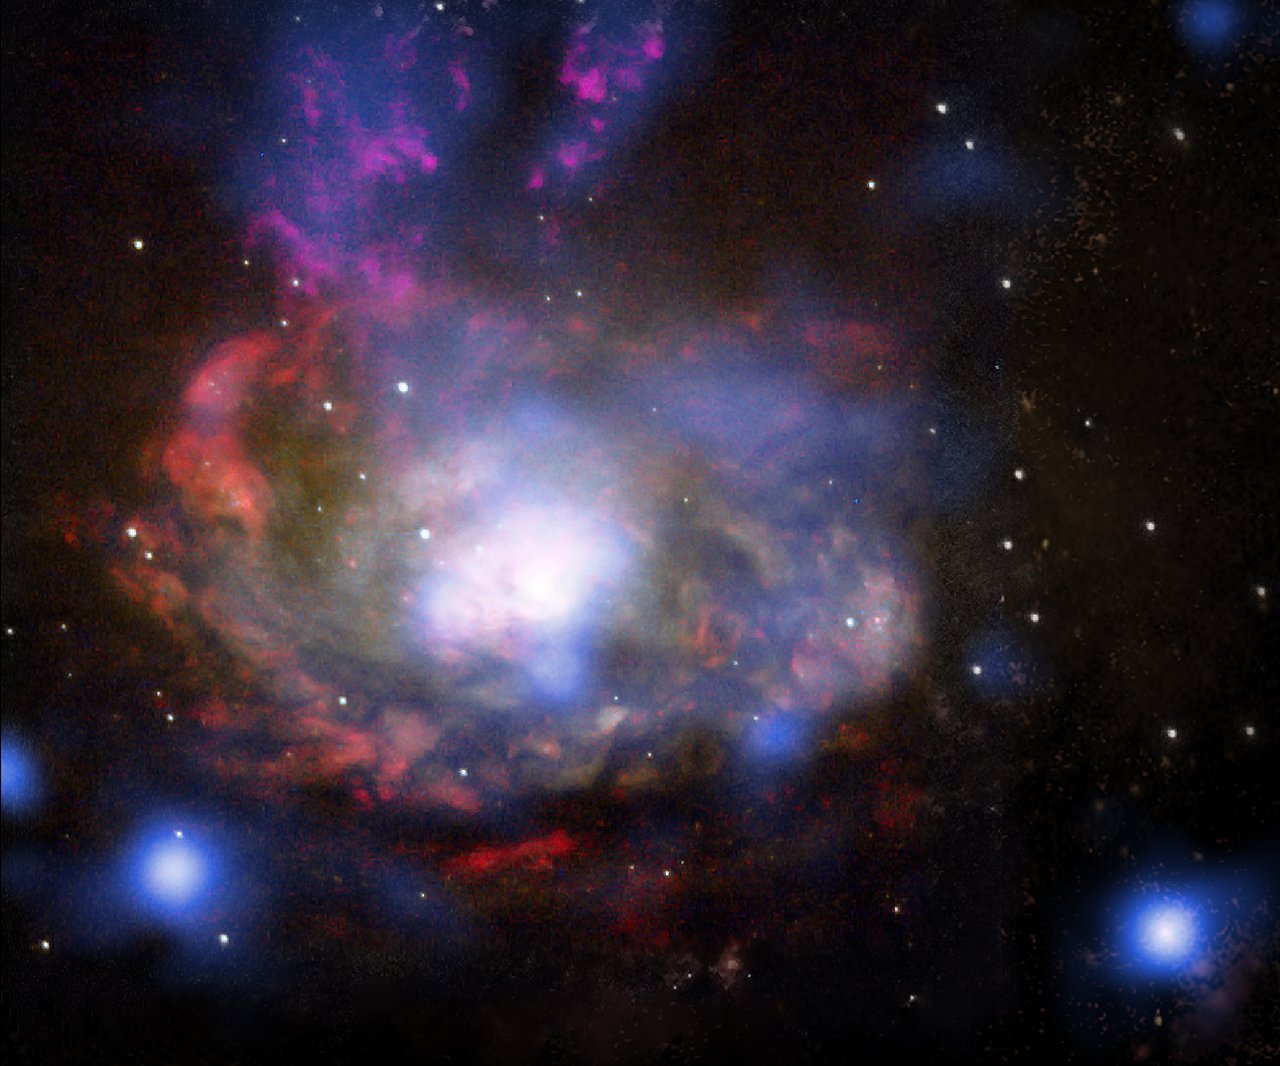 SN 1996cr in Circinus Galaxy